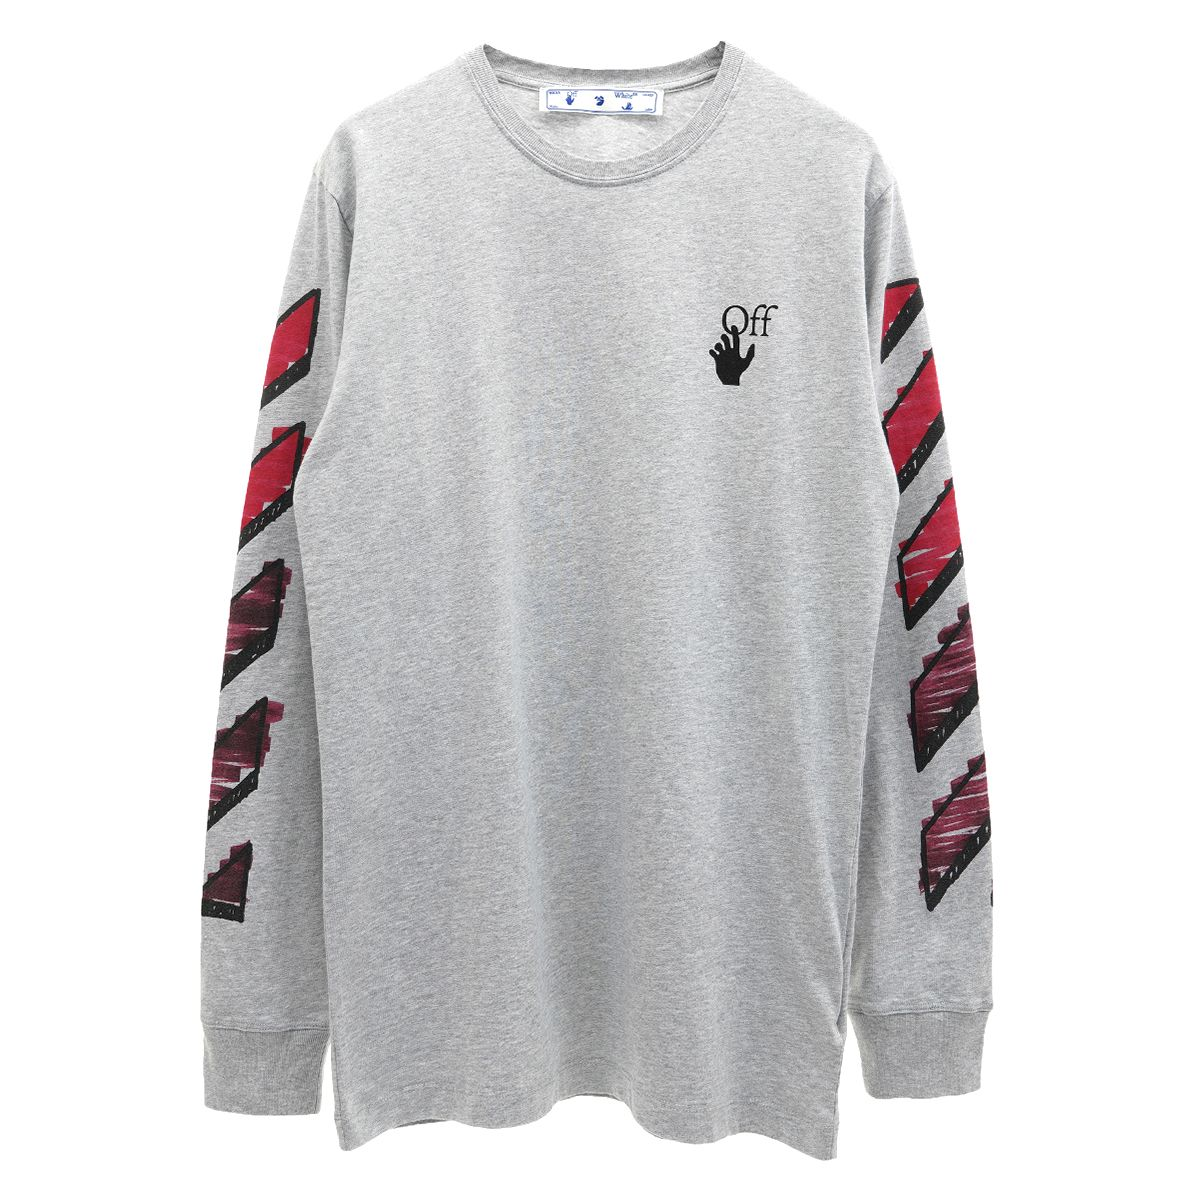 OFF-WHITE c/o Virgil Abloh MENS MARKER L/S TEE / 0825 : MELANGE GREY RED